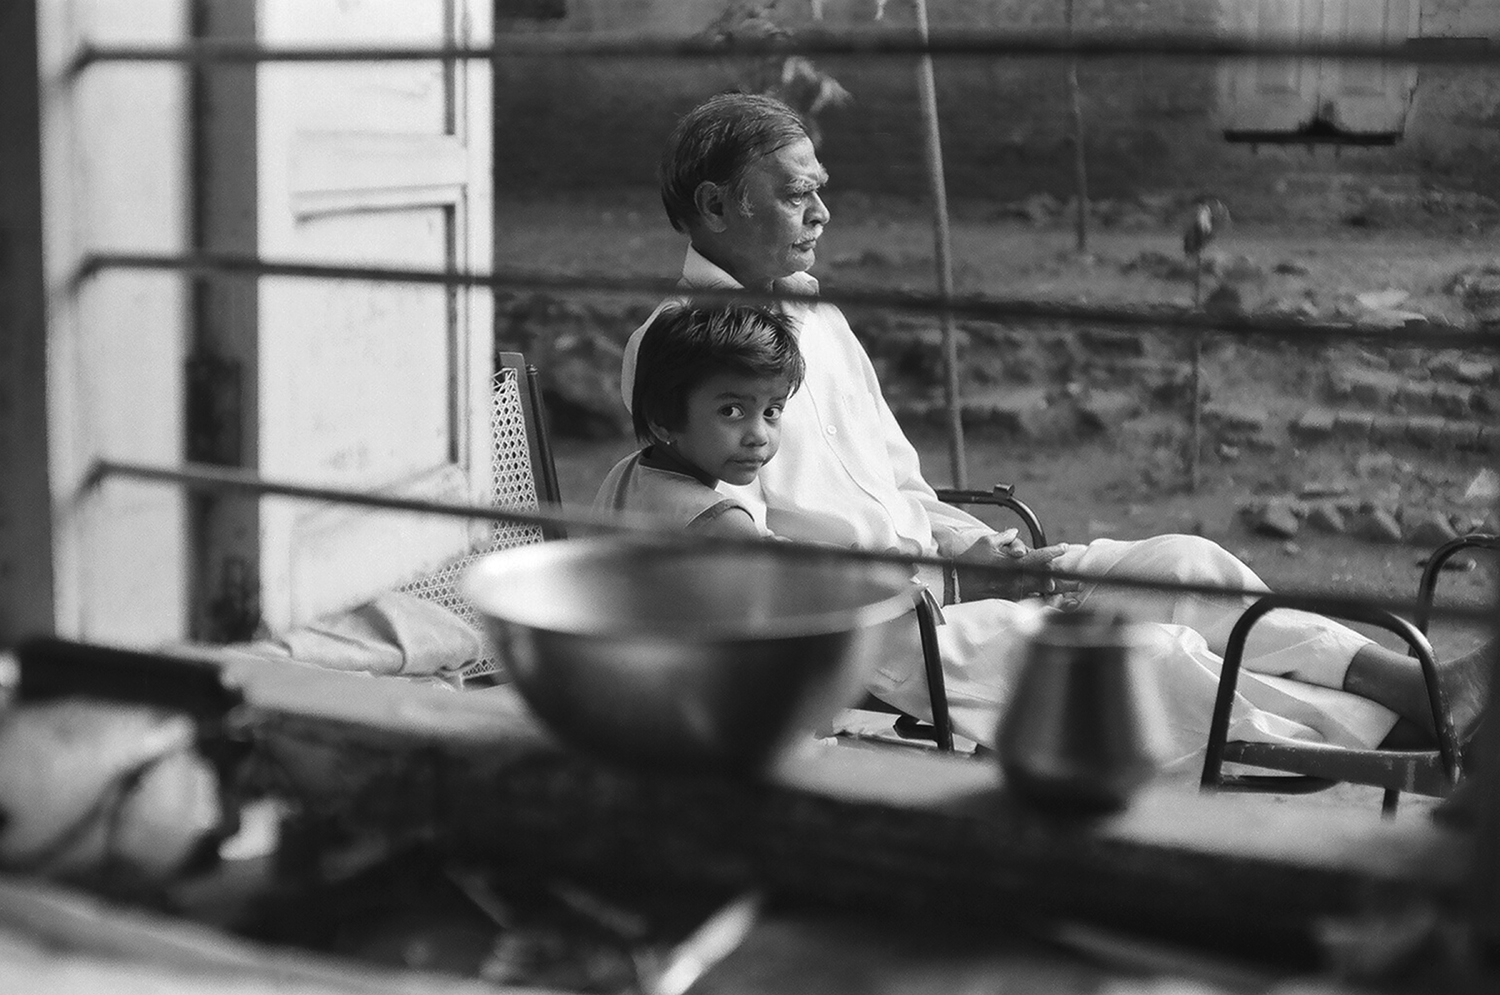 7. Tukaramji with his granddaughter who is looking into the camera. She is used to acting in a lot of films that students have to make as part of their projects | 05400003.jpg